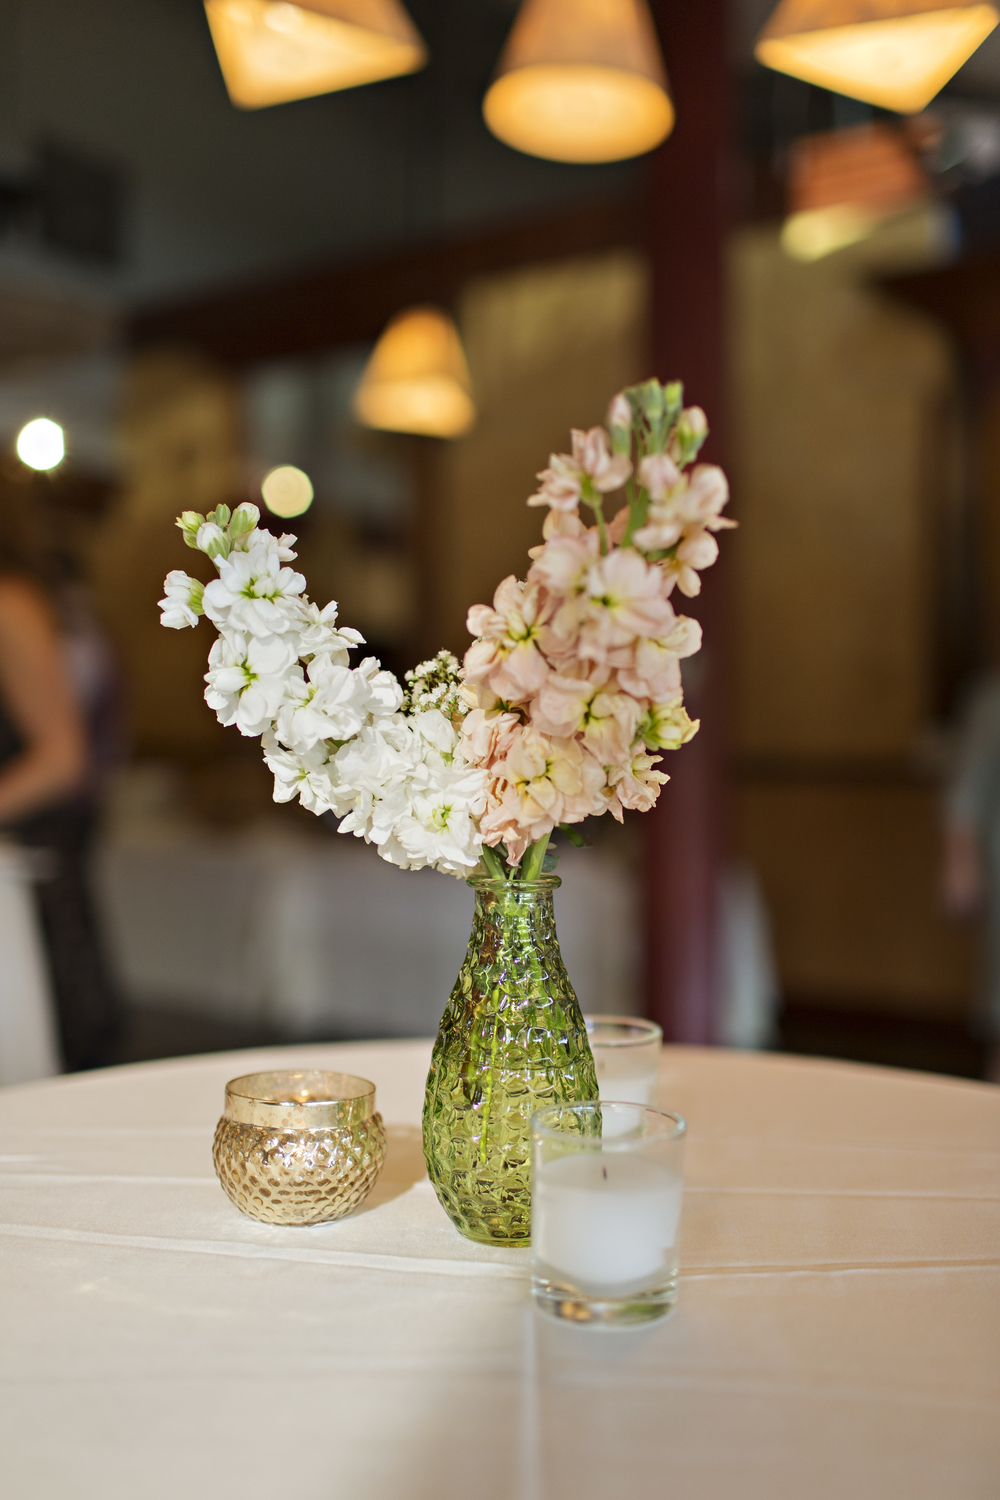 Peach and white flowers in a textured green vase